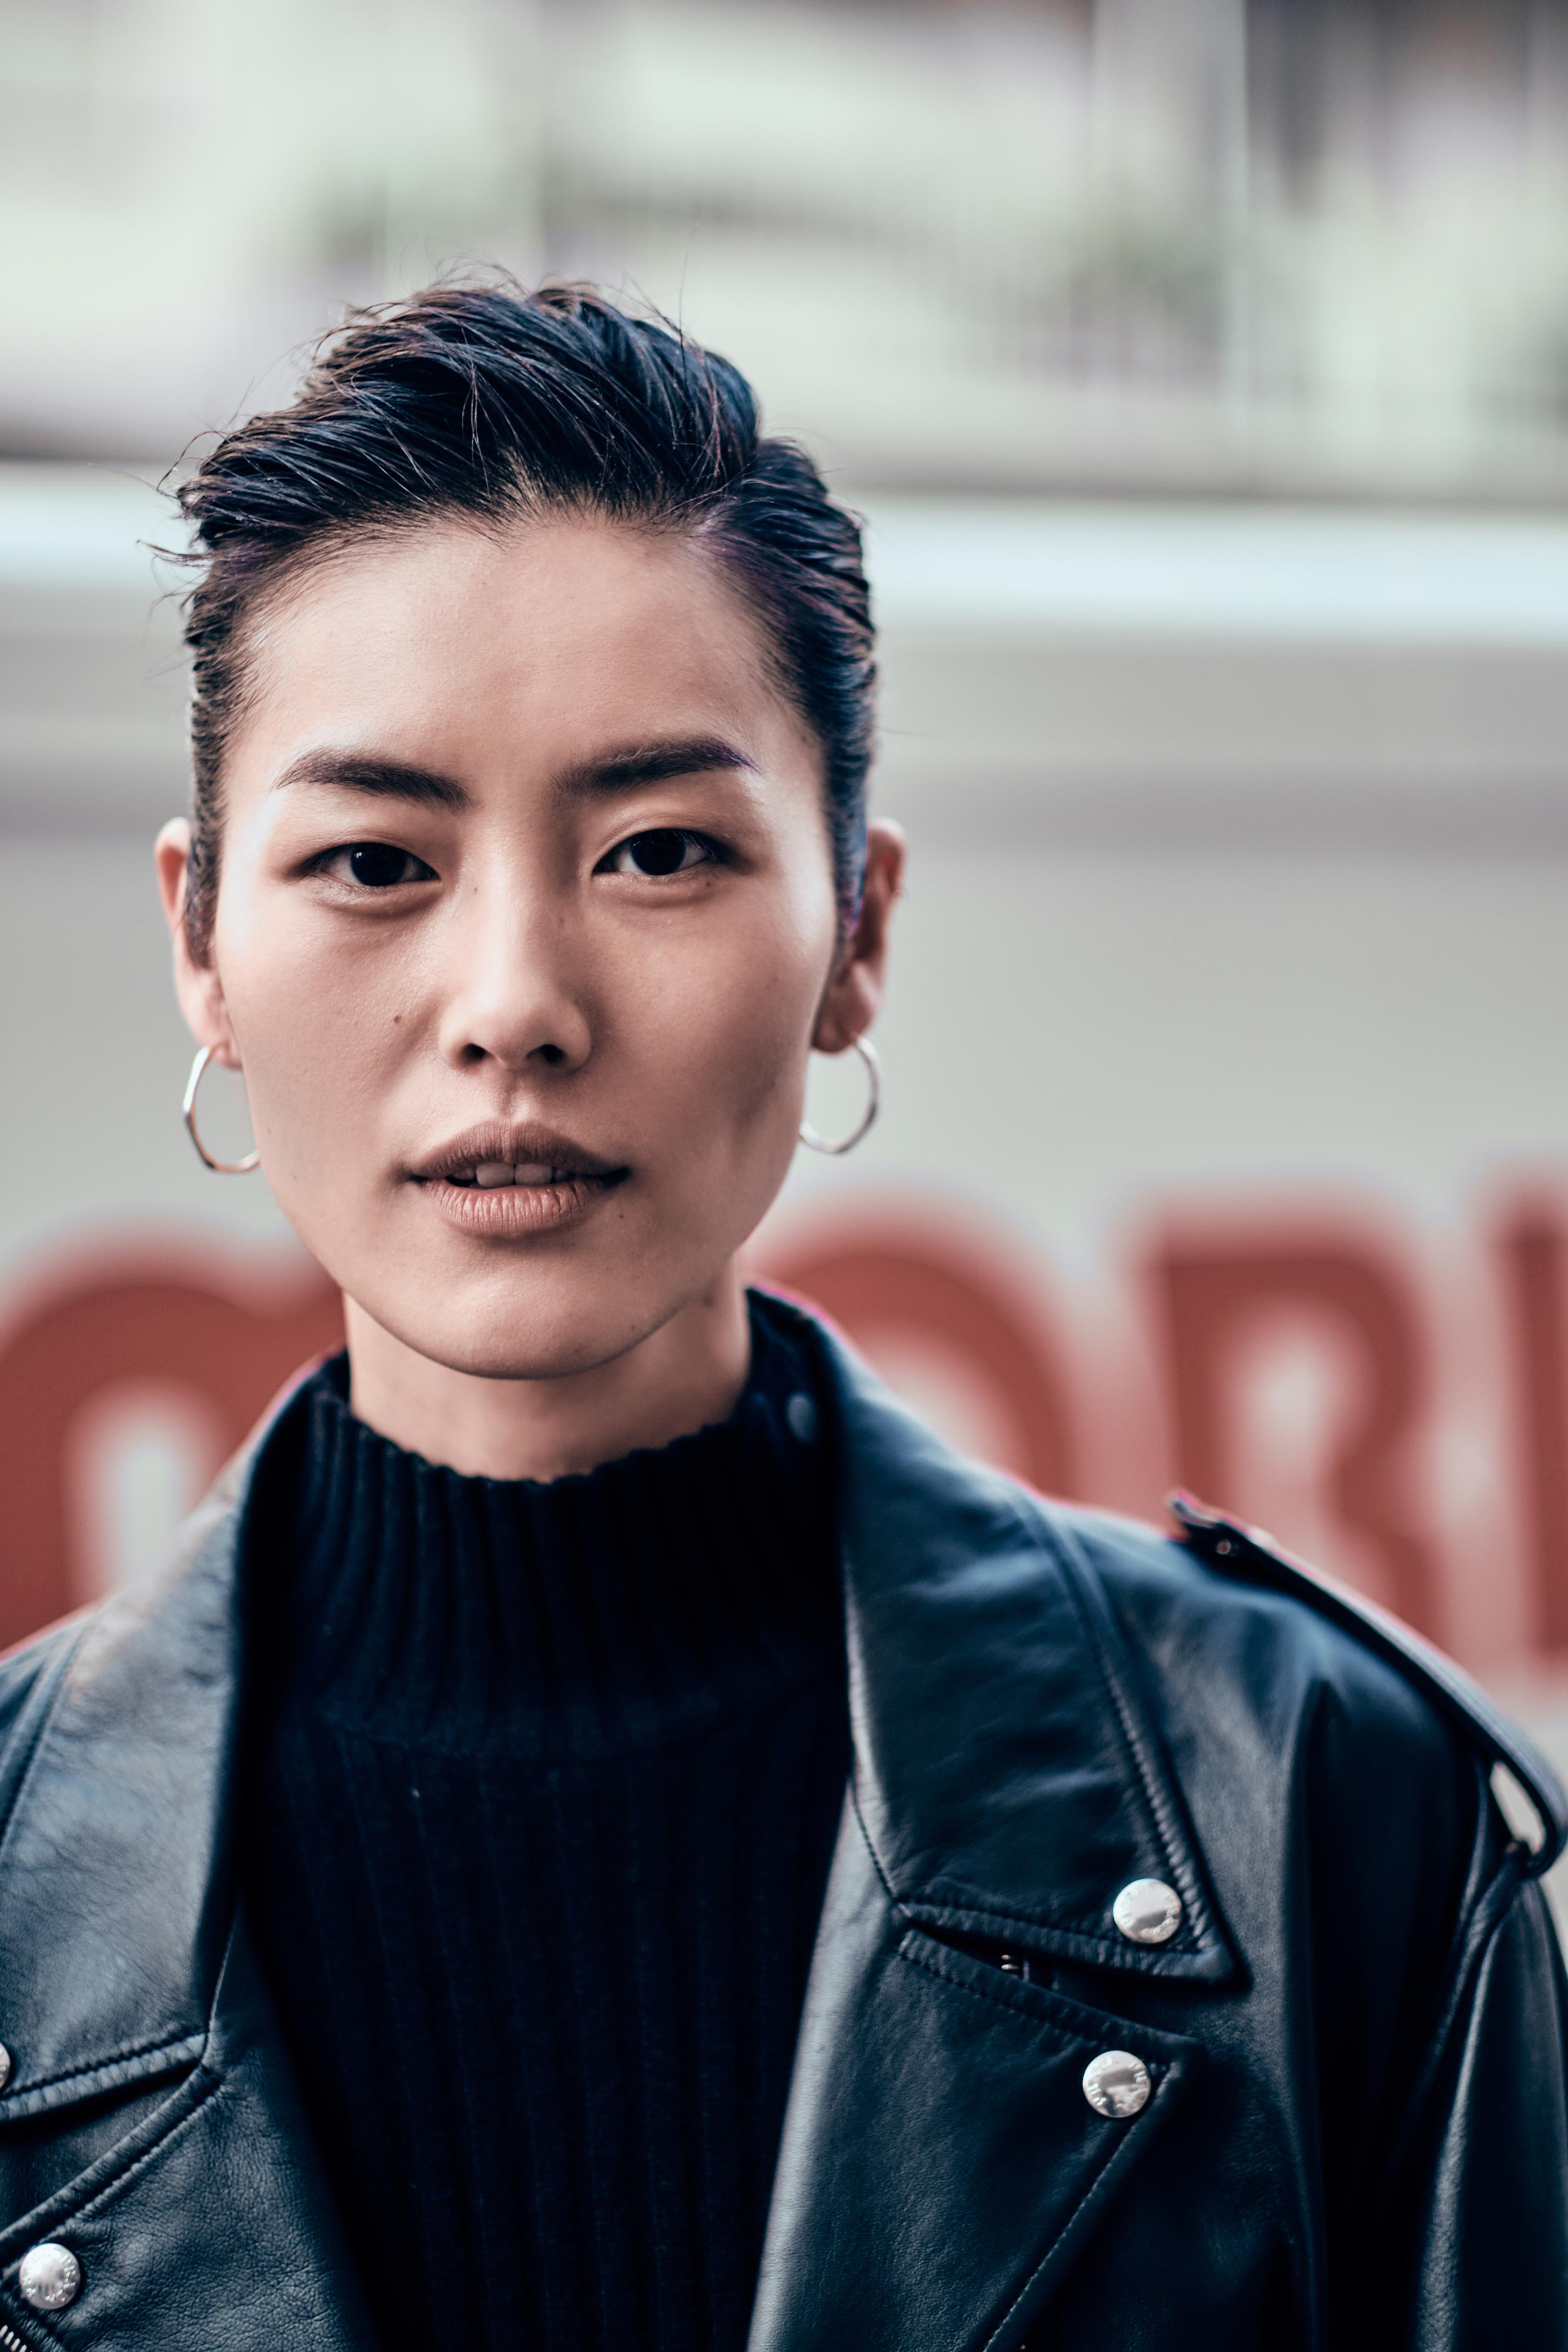 The 32-year old daughter of father (?) and mother(?) Liu Wen in 2020 photo. Liu Wen earned a  million dollar salary - leaving the net worth at 1.7 million in 2020